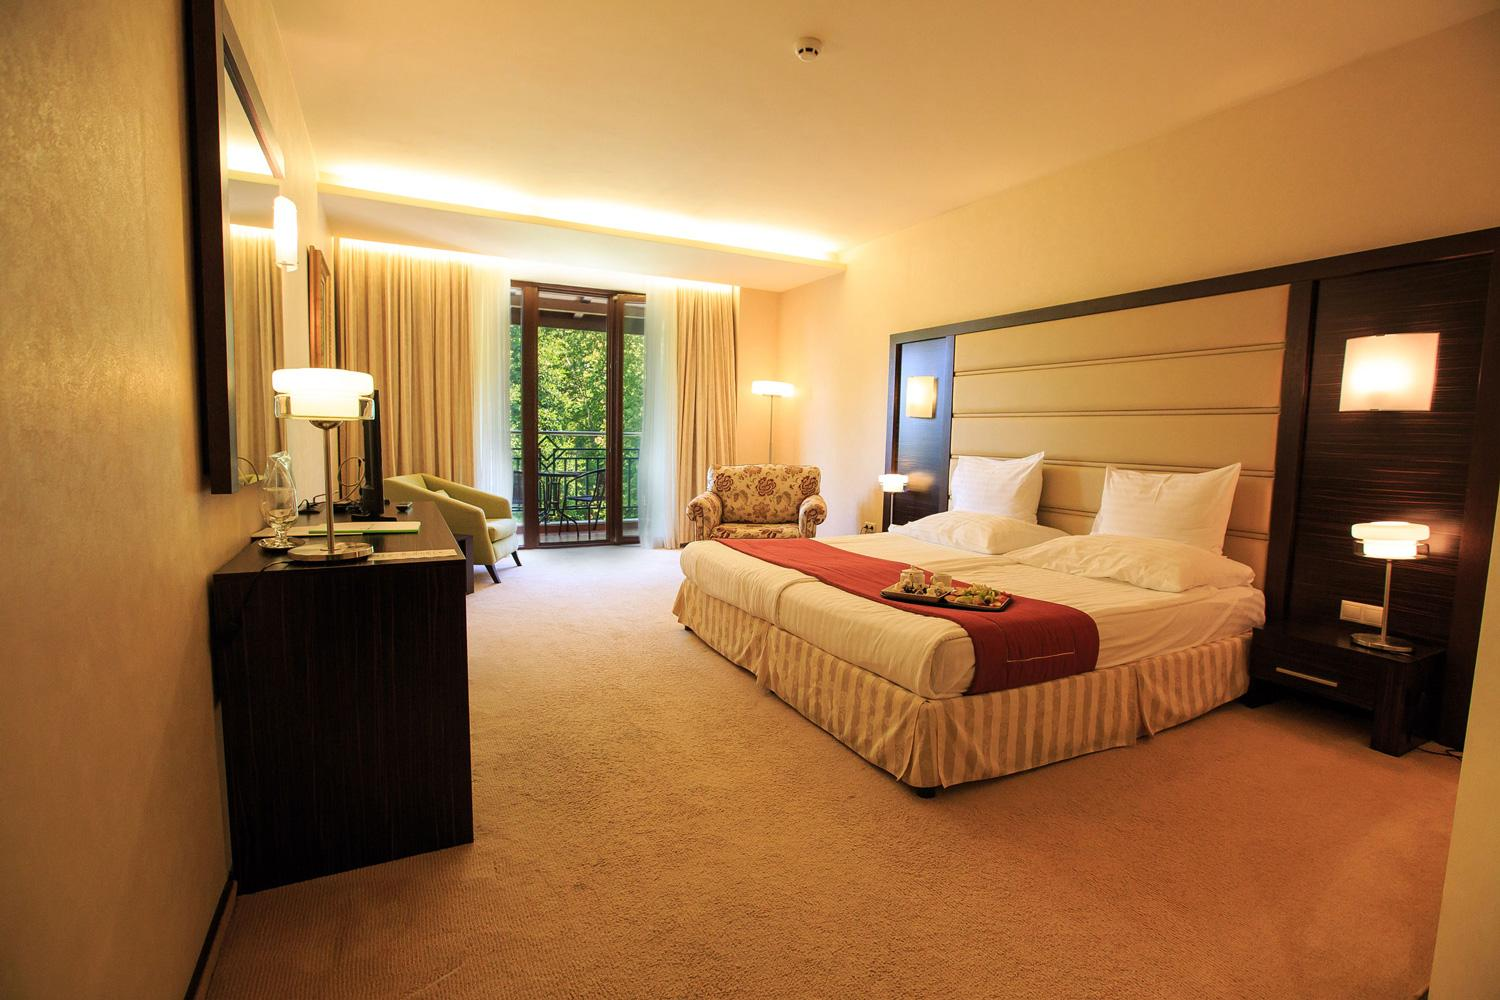 Luxury Double Room with One Kingsize Bed